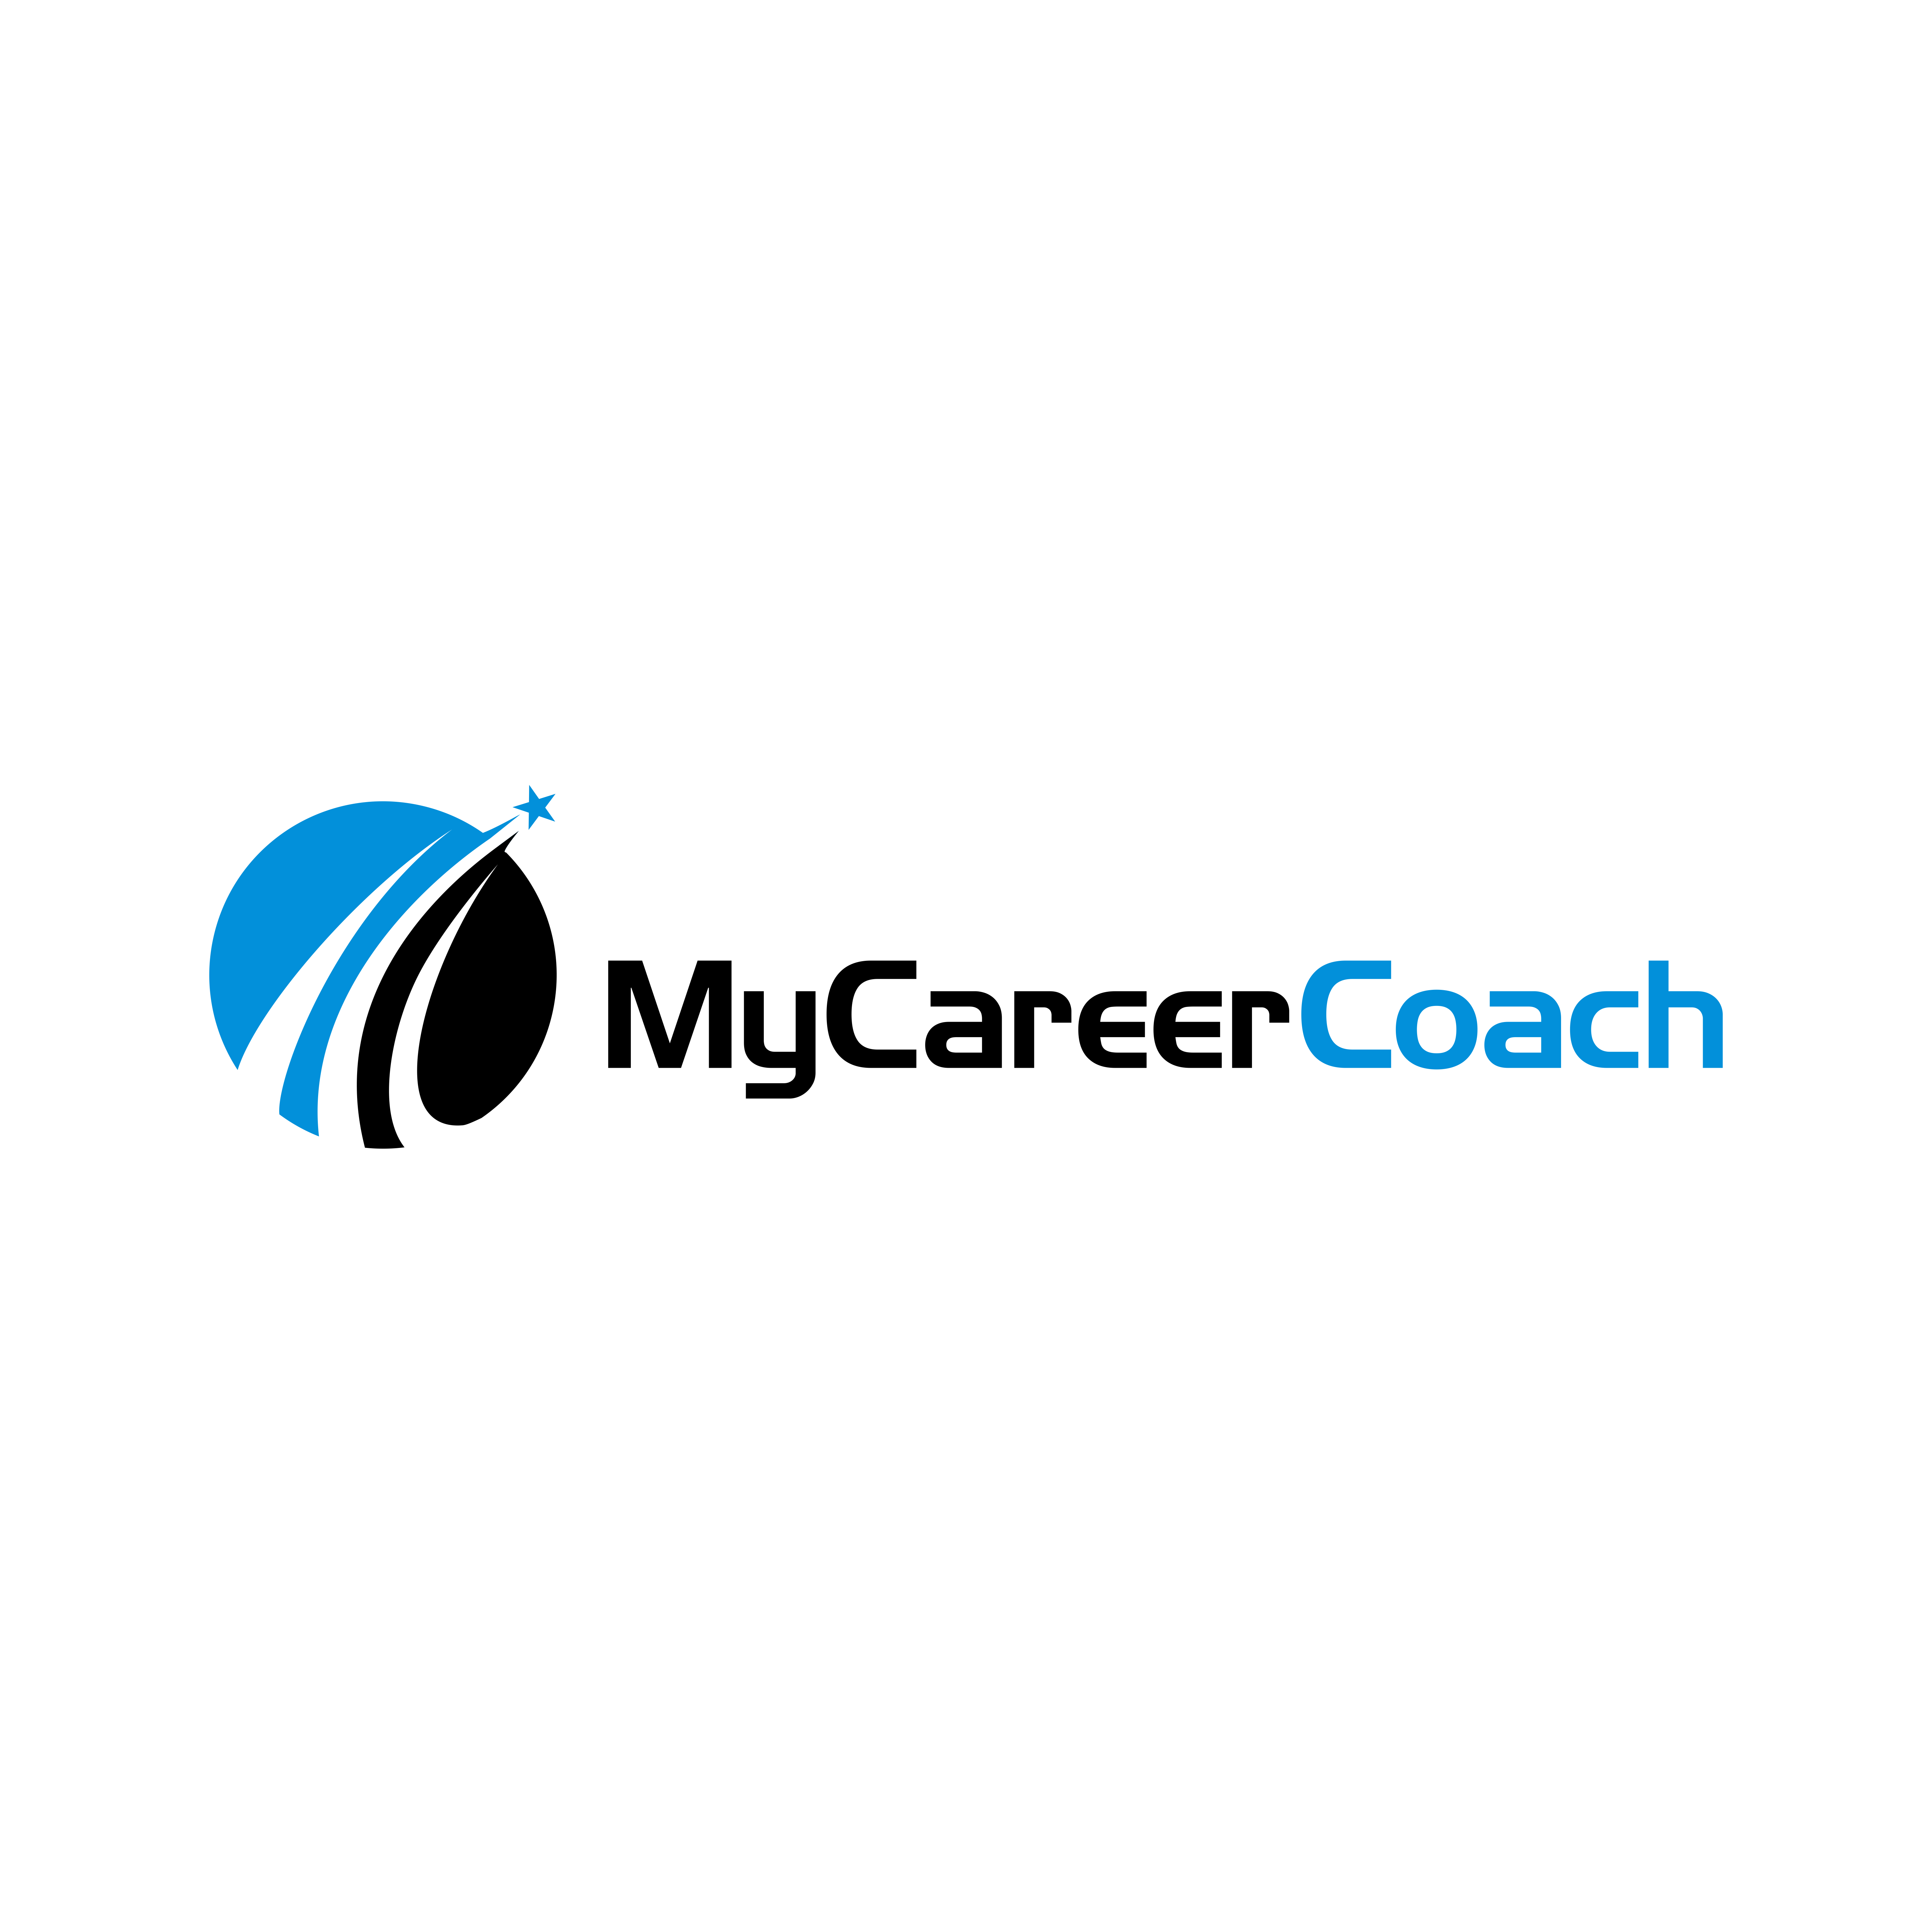 Clean, captivating and energetic logo for an online coaching platform.